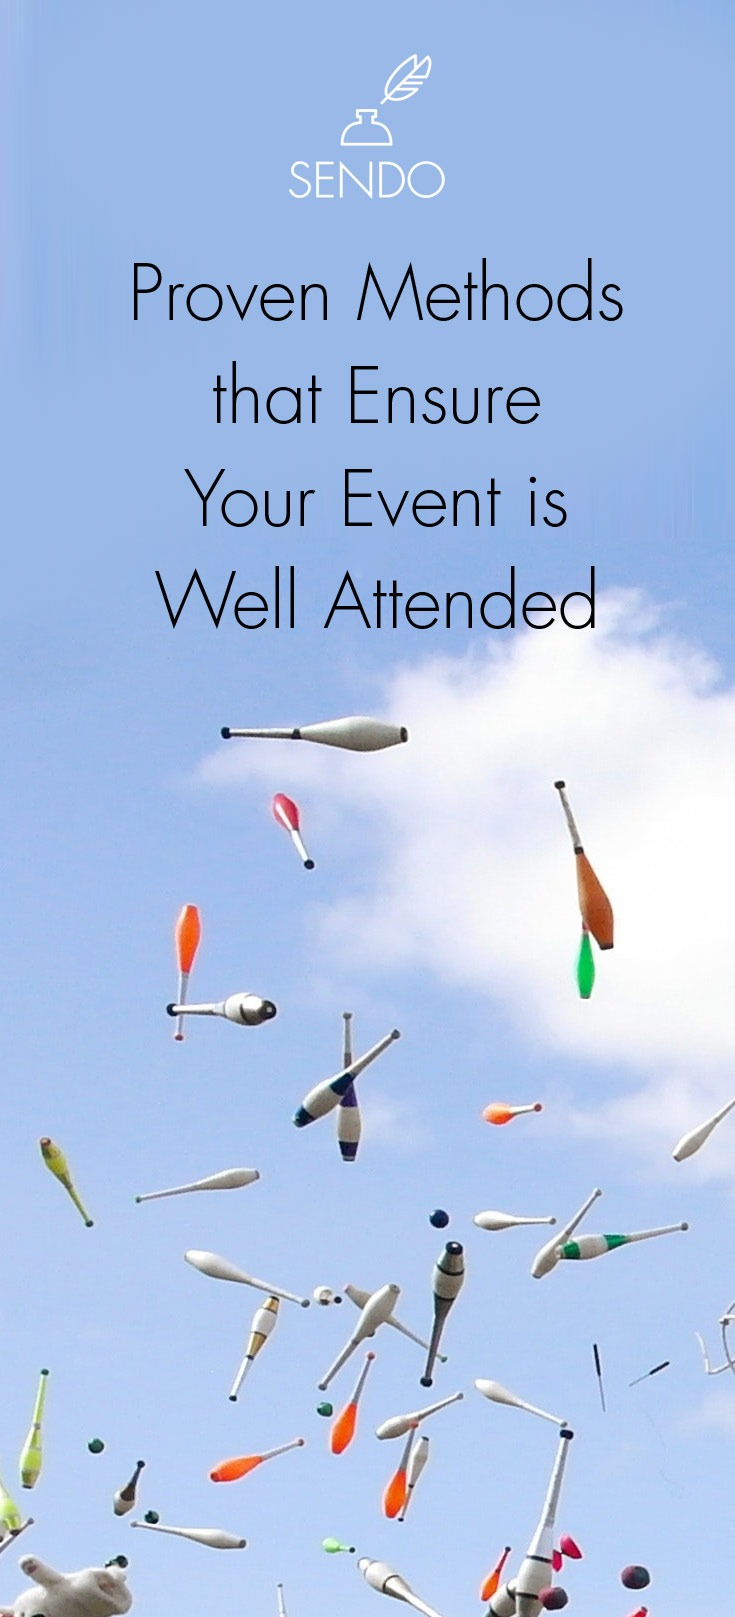 You're Invited! Proven Methods that Ensure Your Event is Well Attended